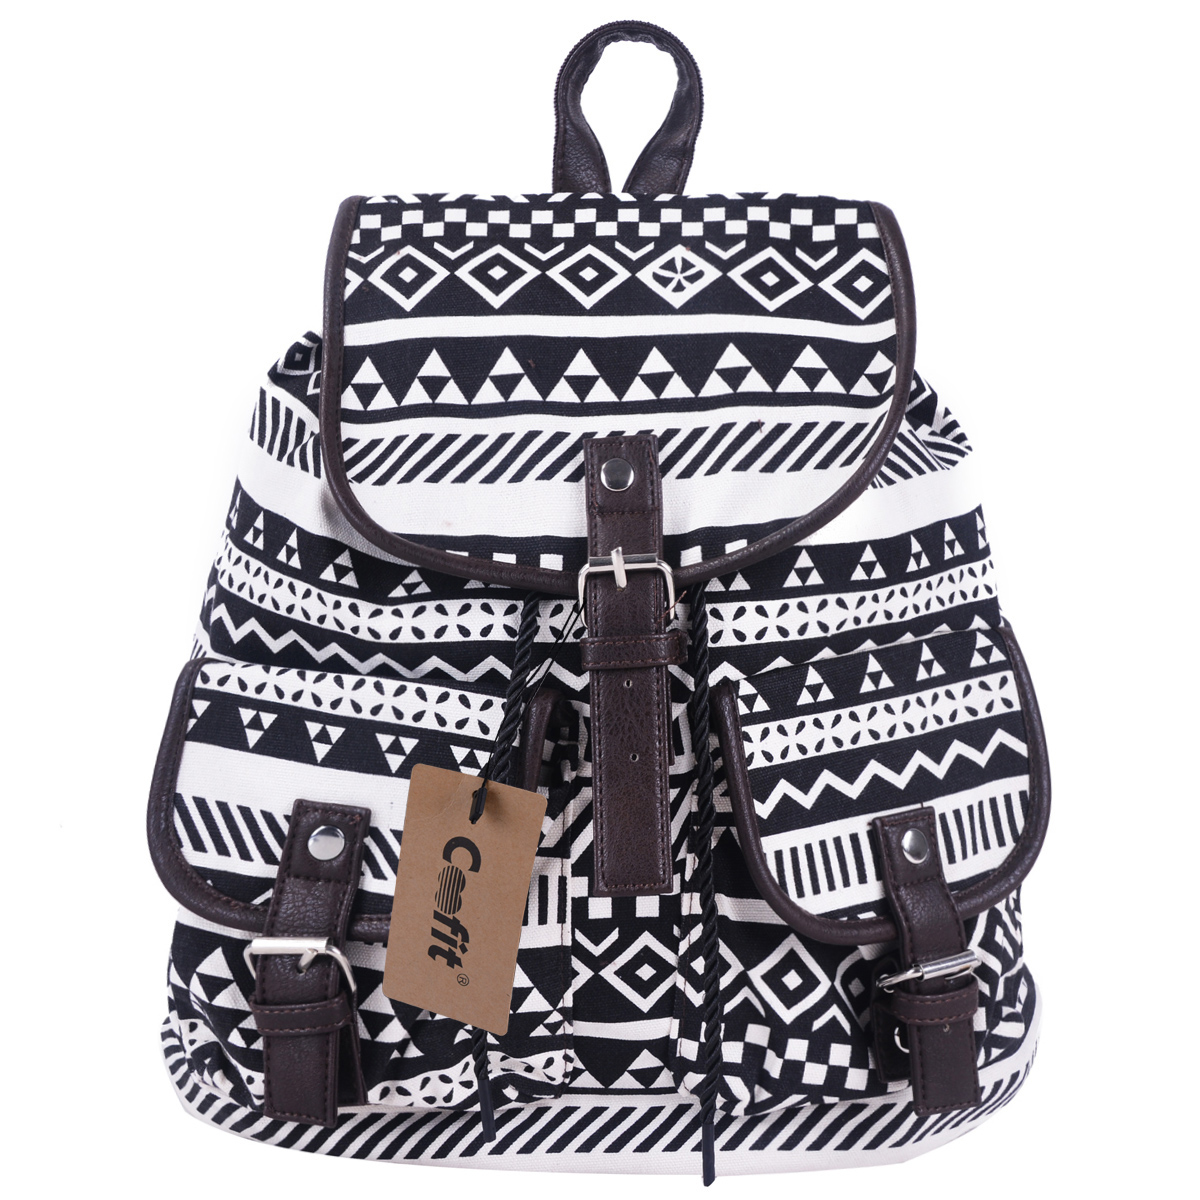 Canvas School Backpack,Coofit New Vintage Tribal Boho Style Floral Lady's Canvas Backpack for Women Ladies Girls